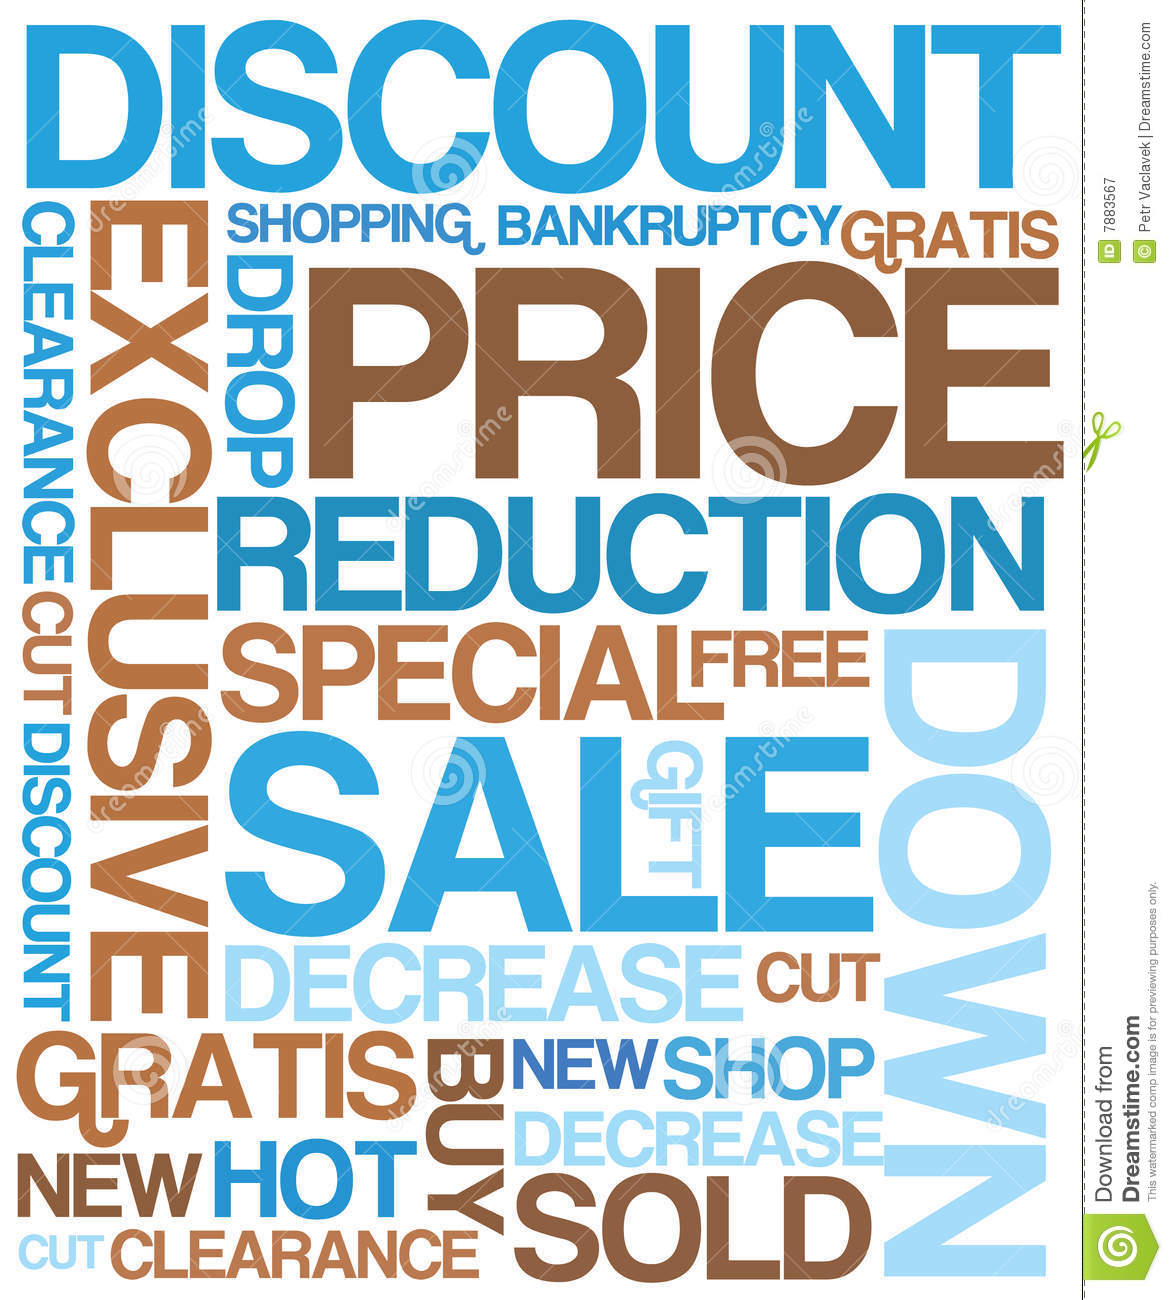 Sale Discount Poster Royalty Free Stock Photography - Image: 7883567: dreamstime.com/royalty-free-stock-photography-sale-discount-poster...